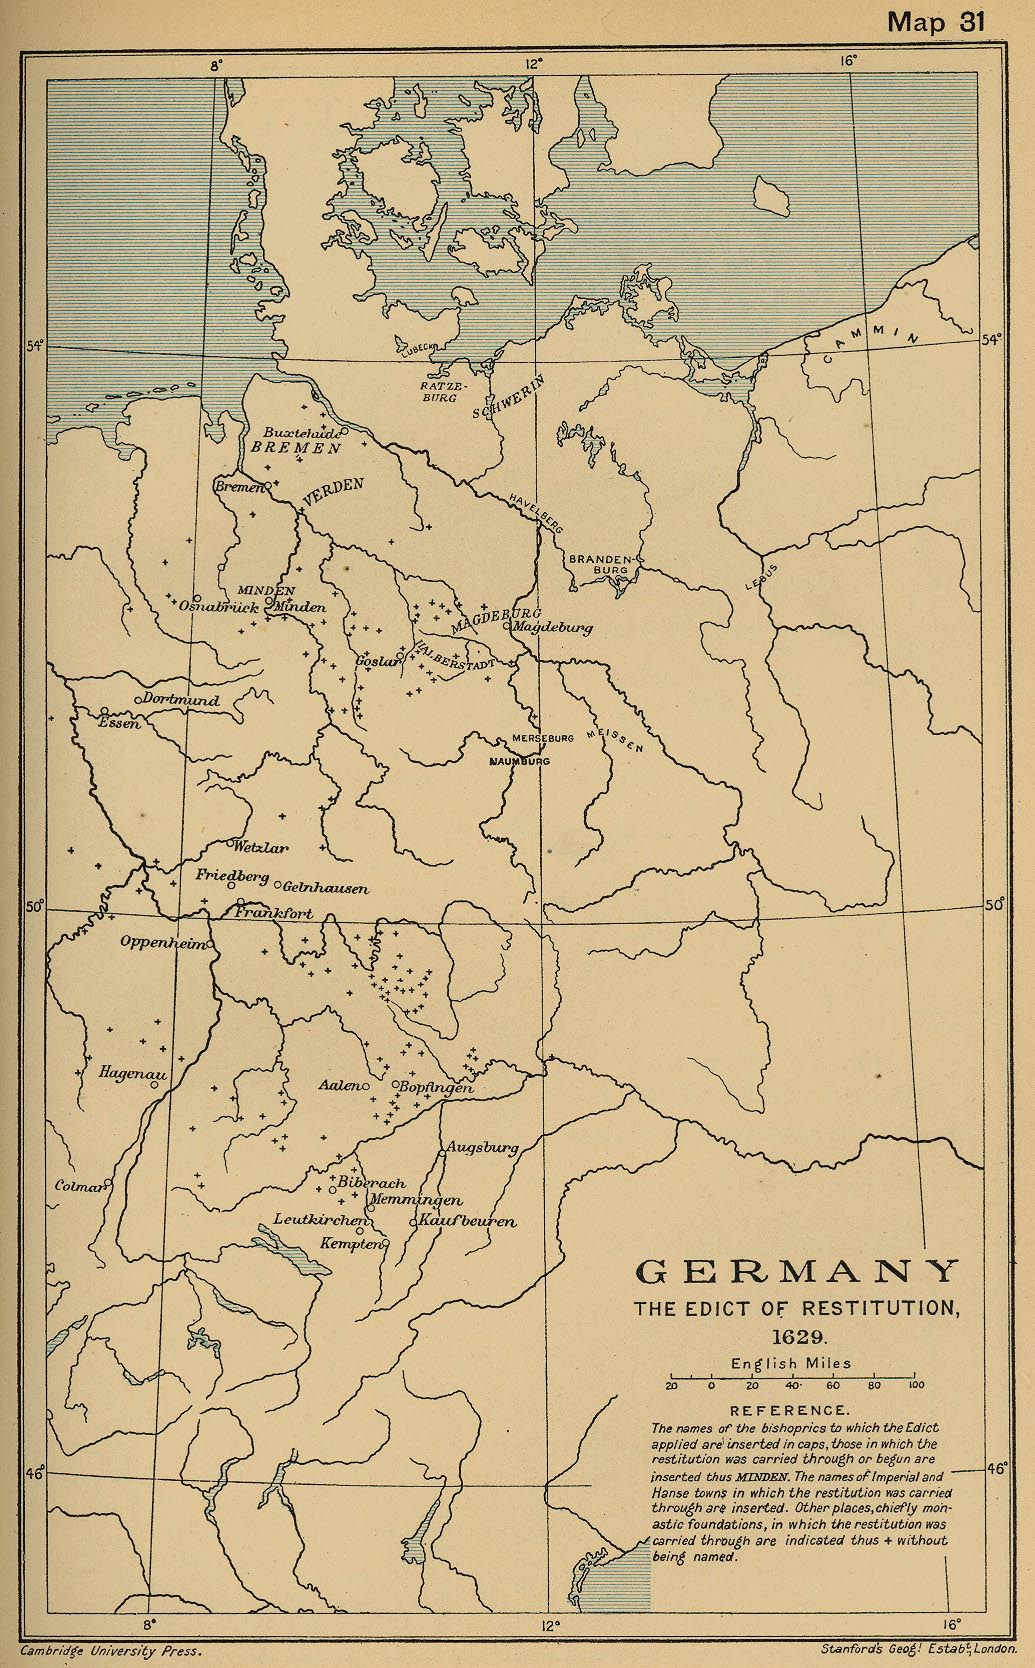 Germany Restitution 1629